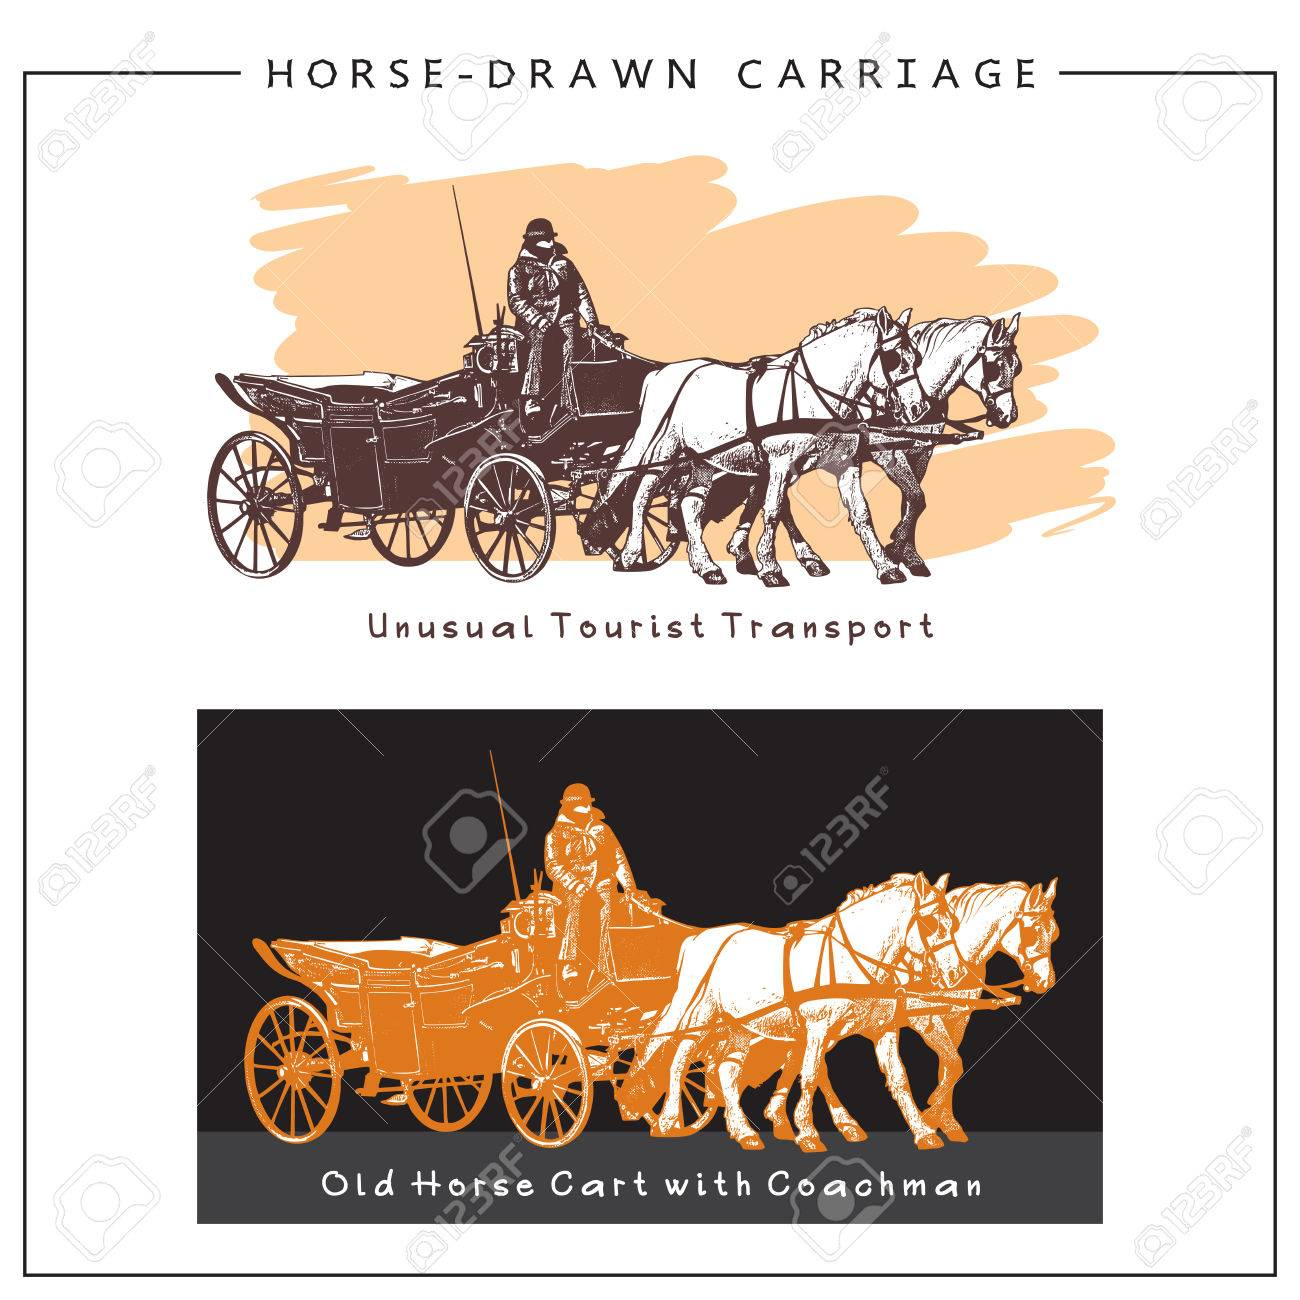 Horse Drawn Carriage Horse Cart With A Man And Two Horses Colored Royalty Free Cliparts Vectors And Stock Illustration Image 68334831